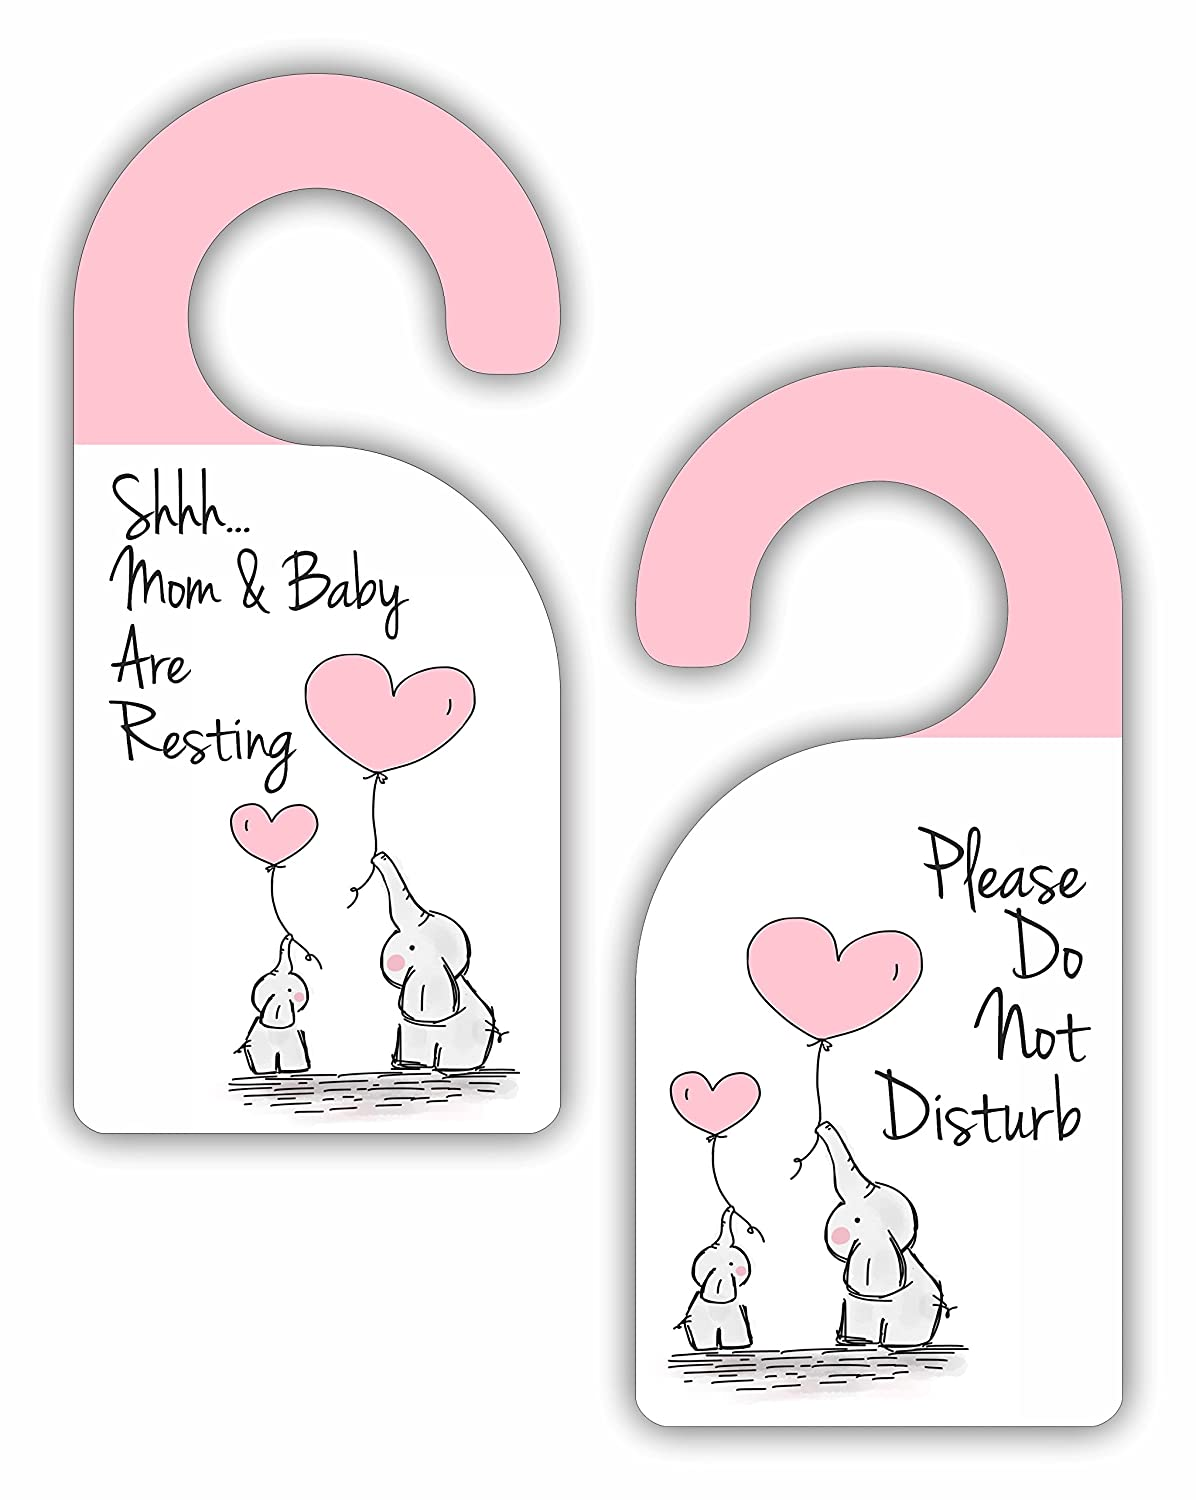 Shhh Mom and Baby Are Resting - Please Do Not Disturb - Baby Girl - Room Door Sign Hanger - Double Sided - Hard Plastic - Glossy Finish Jacks Outlet JOI-DOHA-24